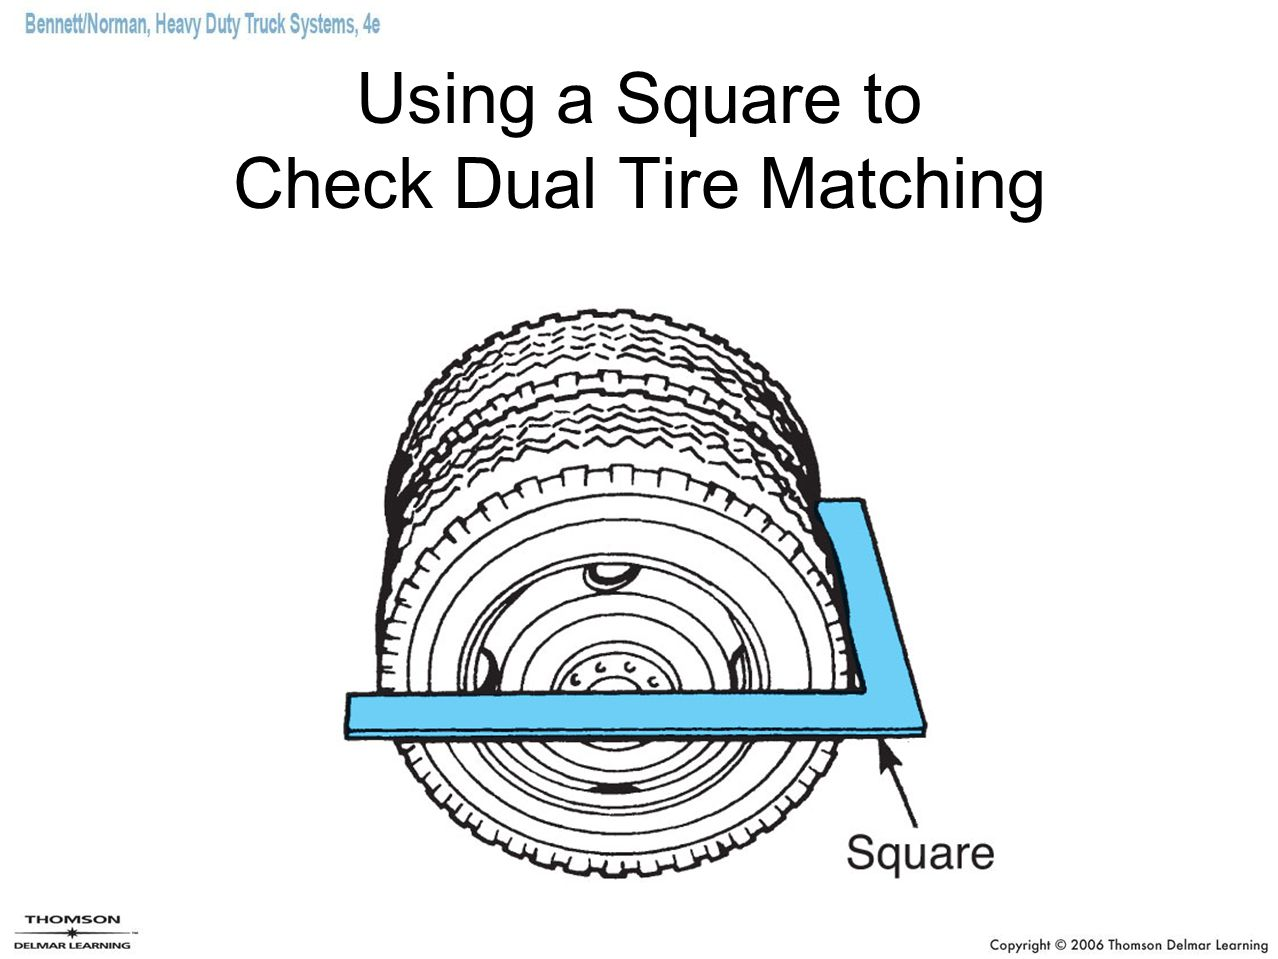 Using a Square to Check Dual Tire Matching